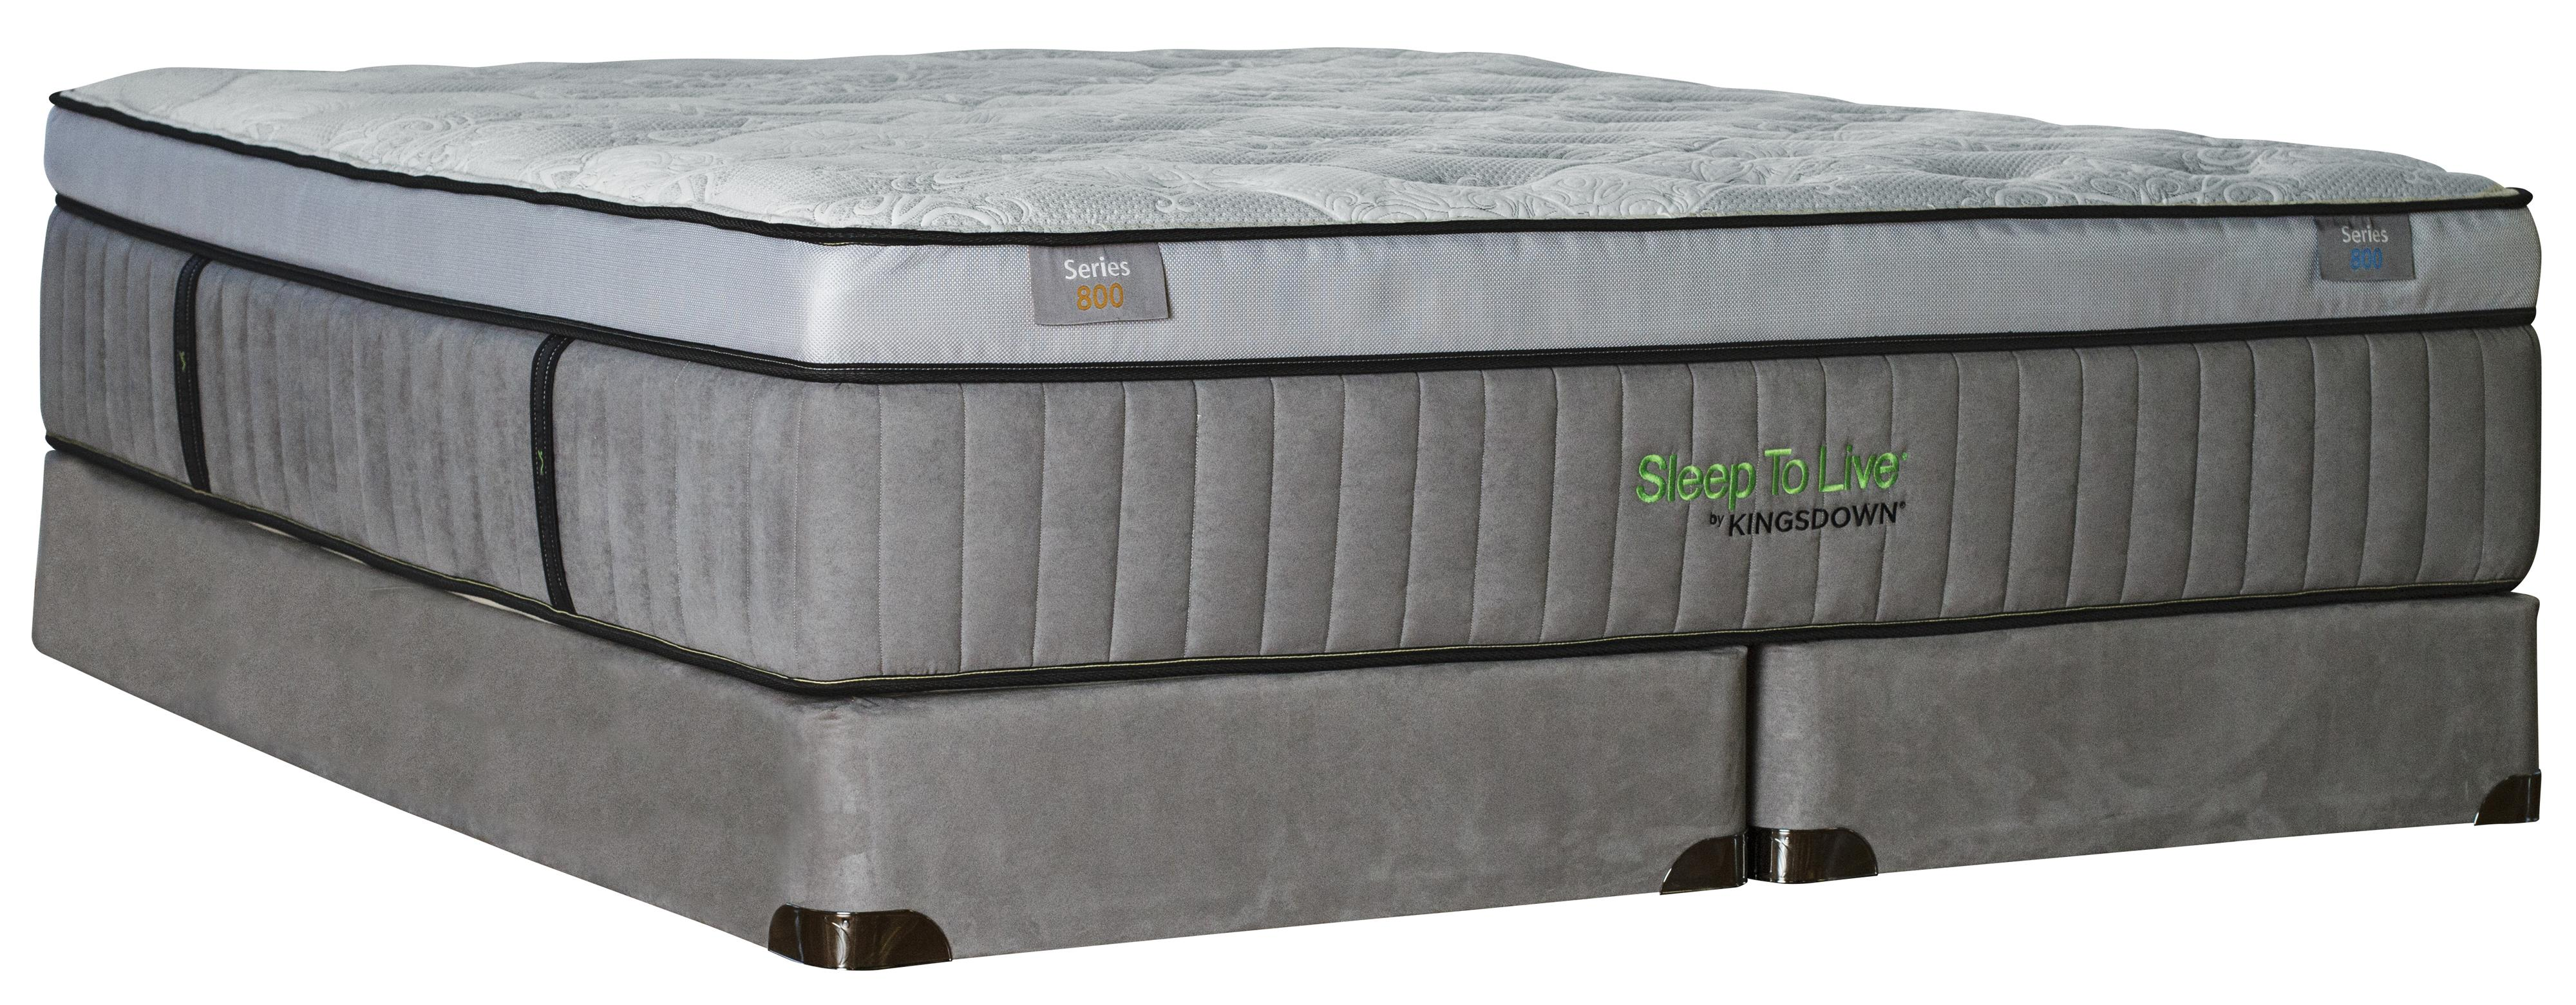 Kingsdown Sleep to Live 800 Twin Luxurios Box Top Mattress Set - Item Number: Series800-T+1128SFH-T